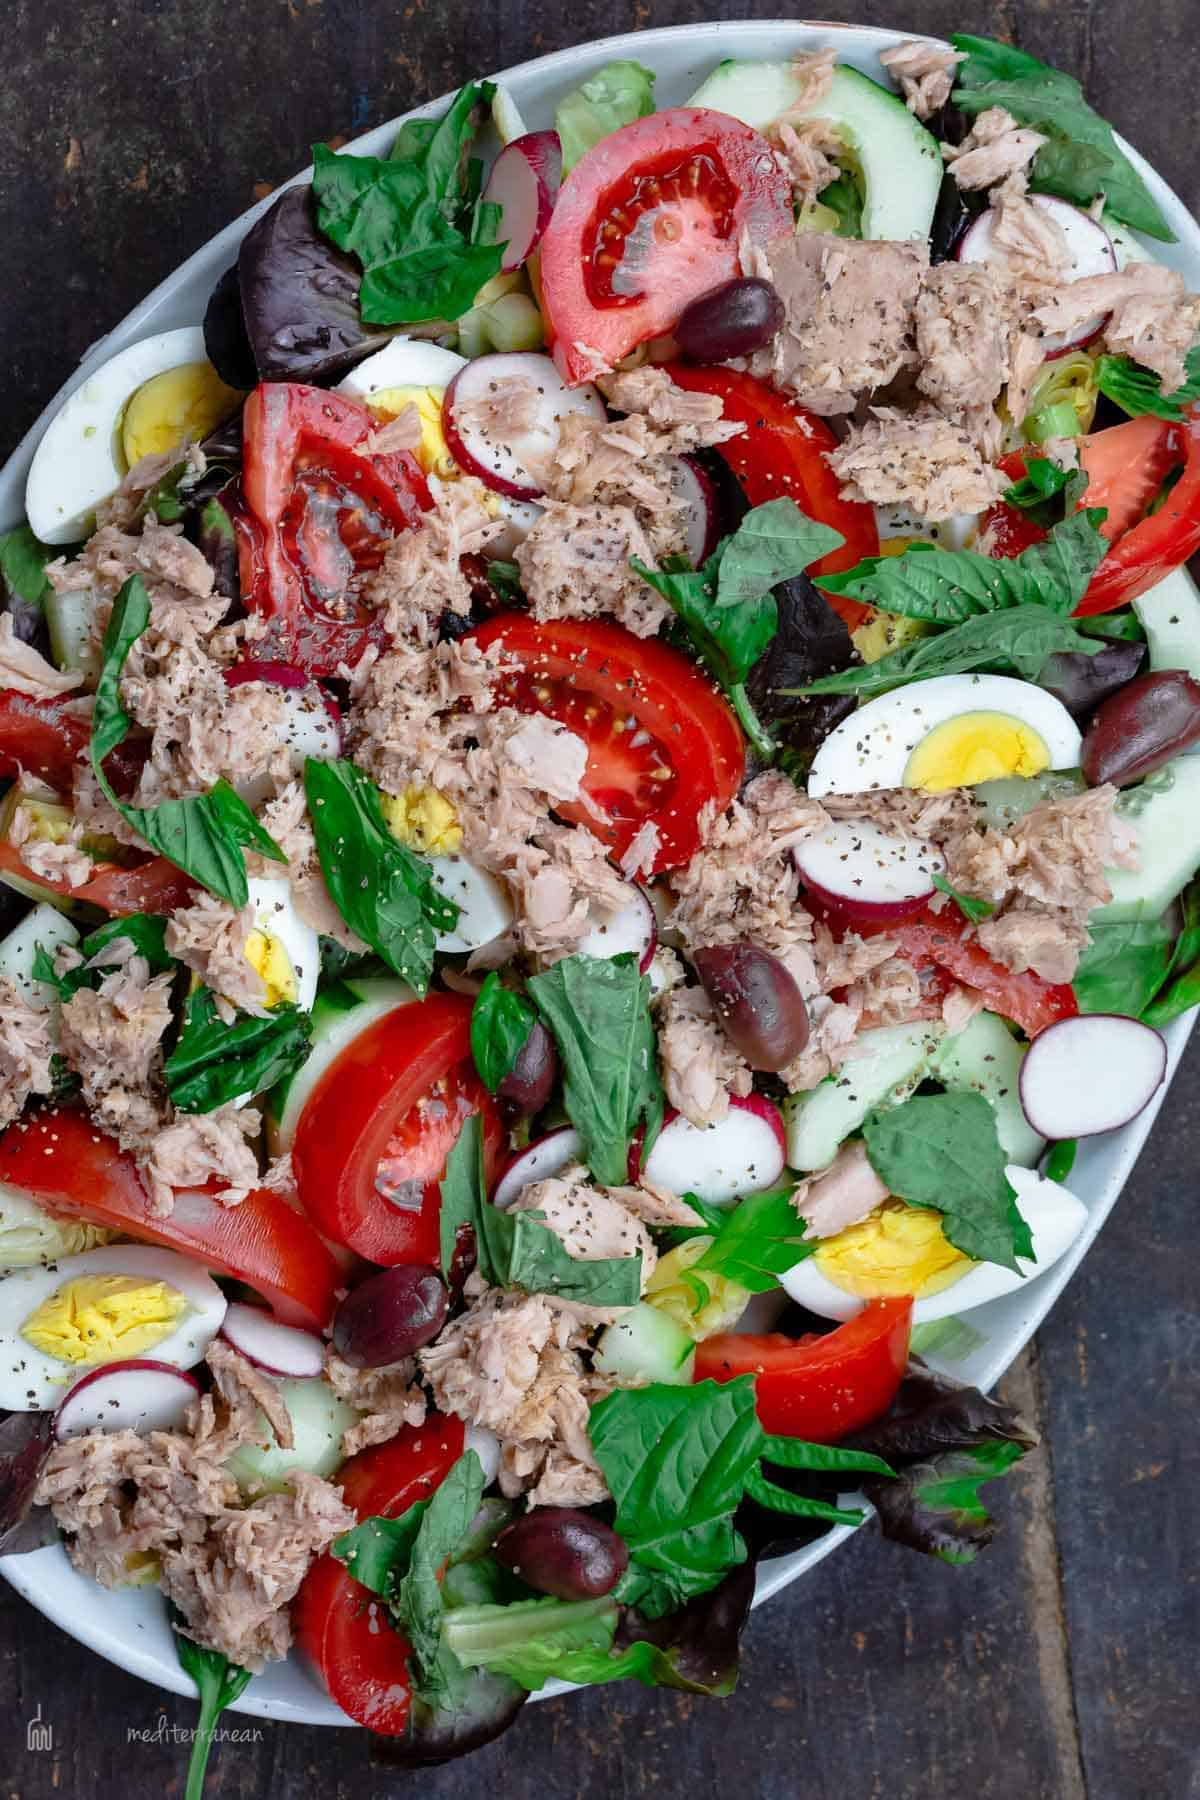 A Nicoise Tuna Salad on a Silver Platter on Top of a Picnic Table